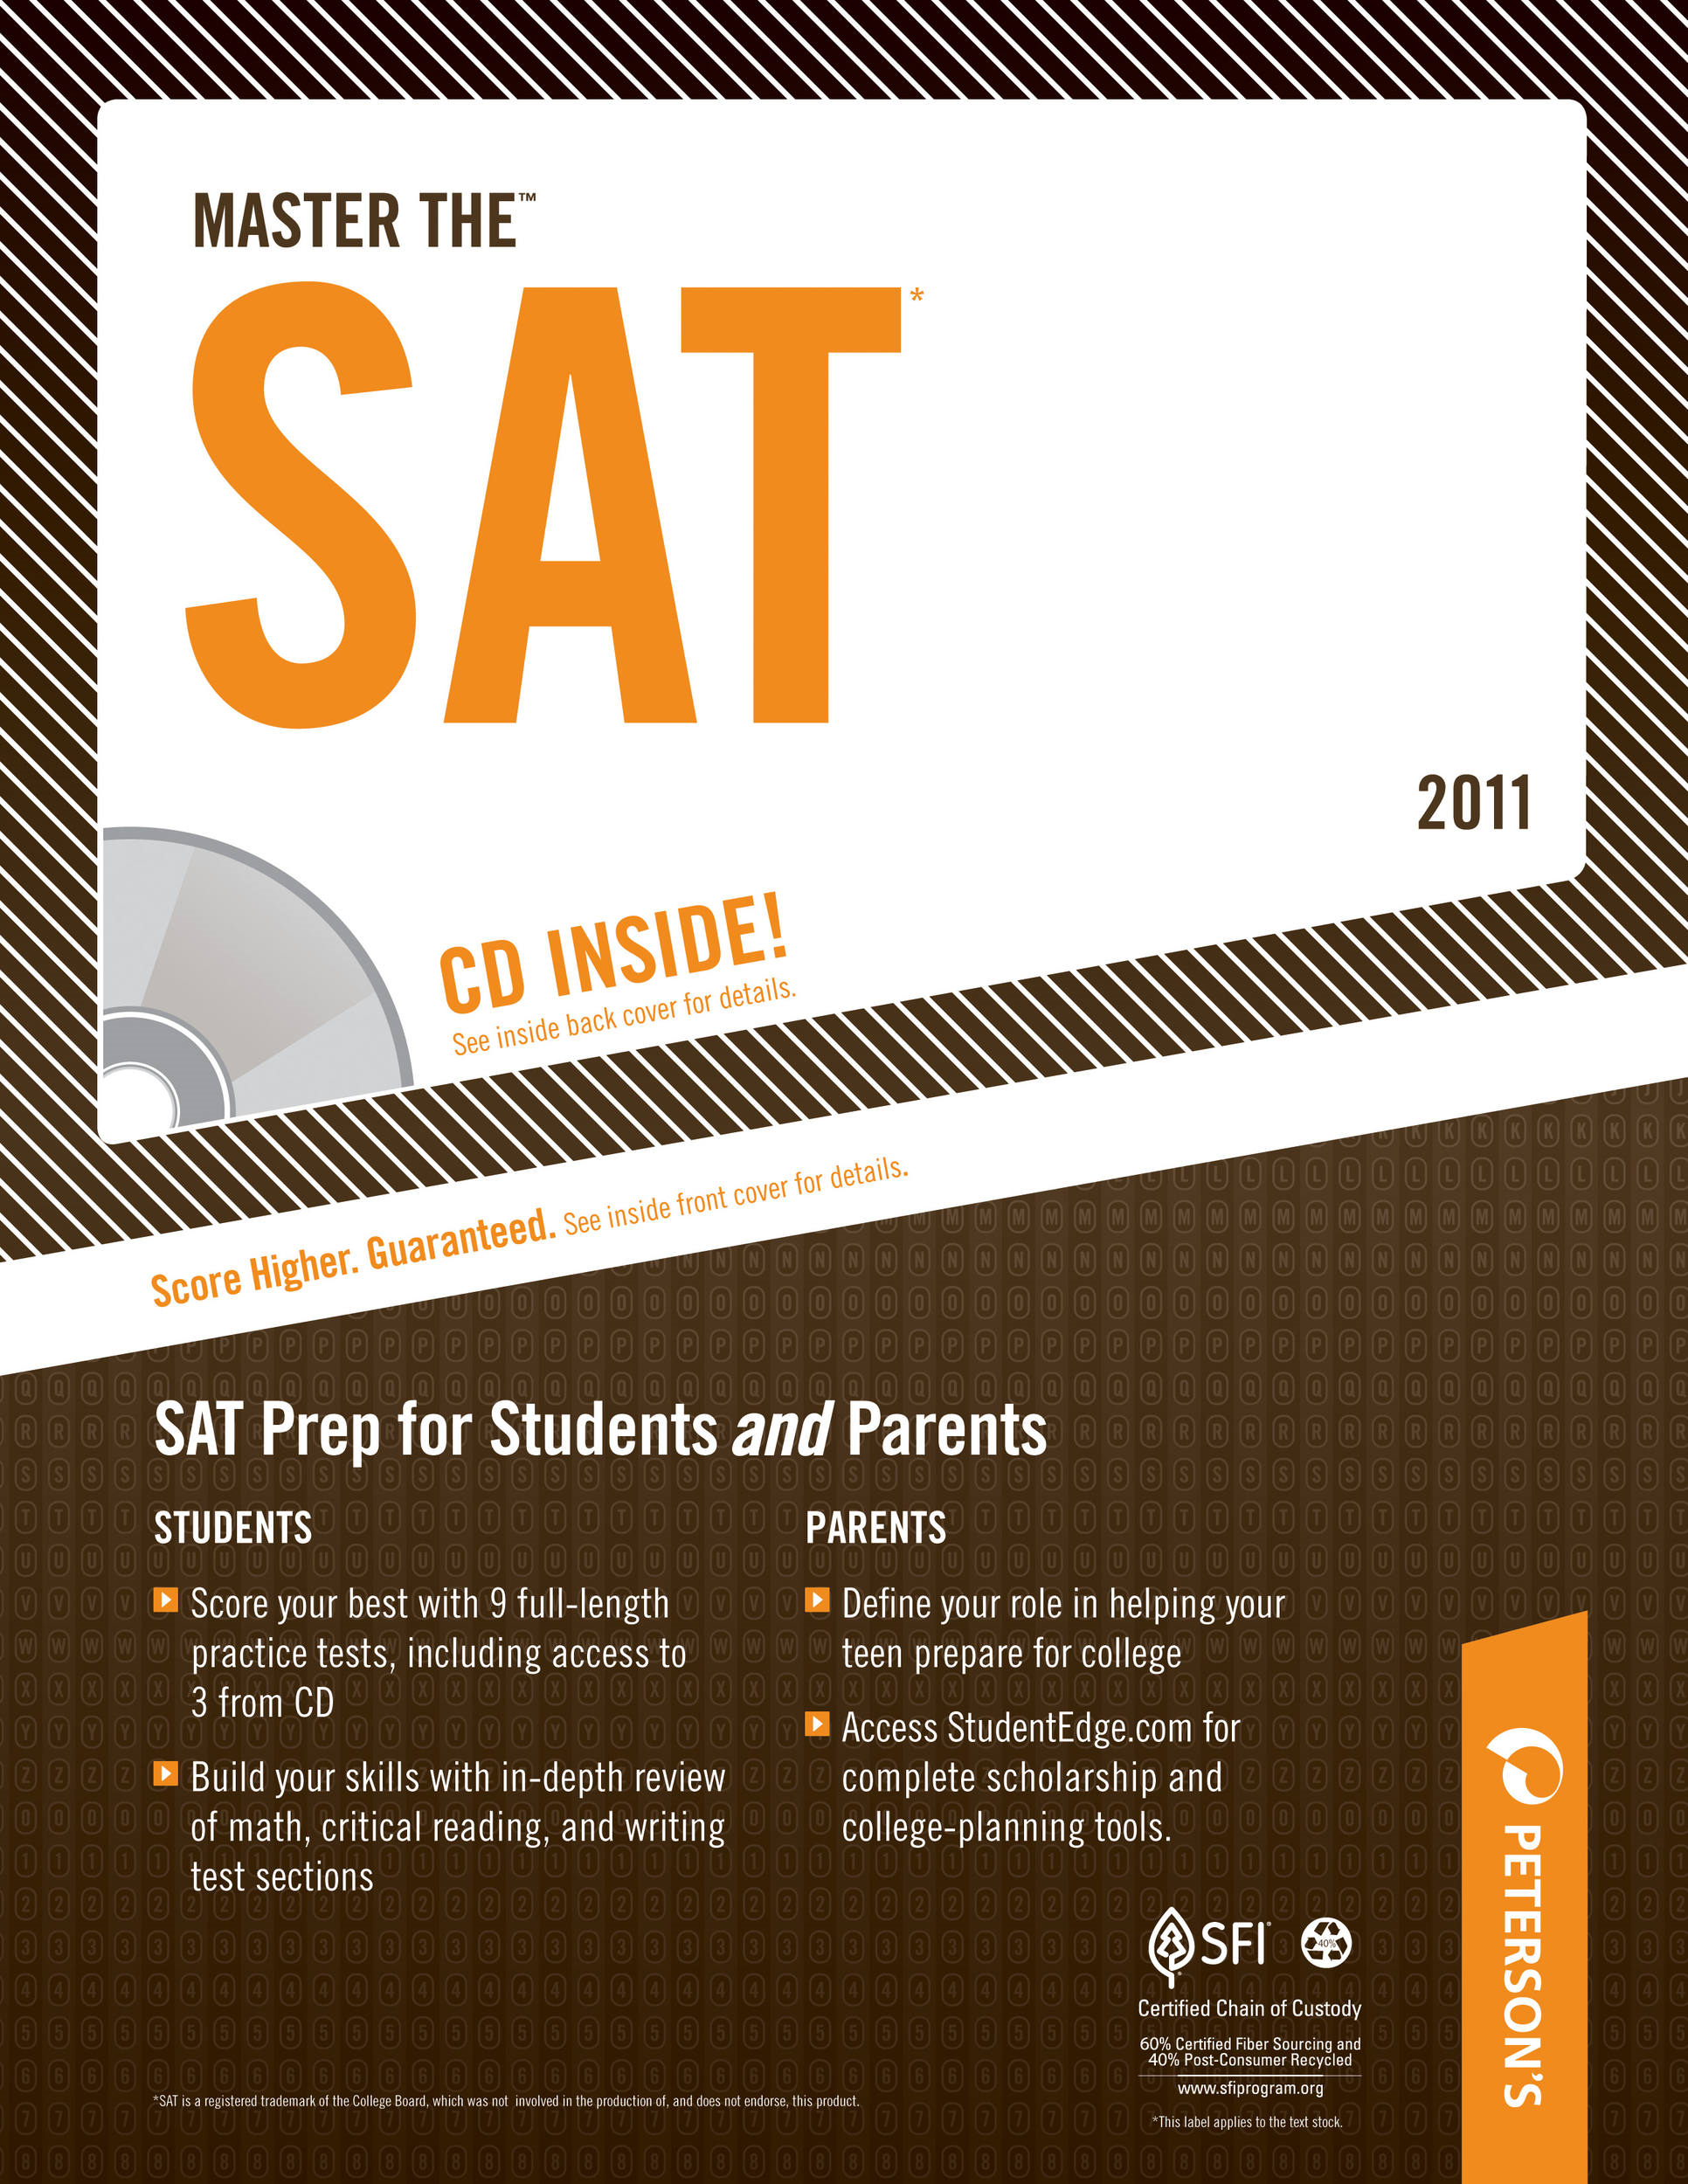 Master the SAT: The Writing Process and the SAT Essay By: Peterson's